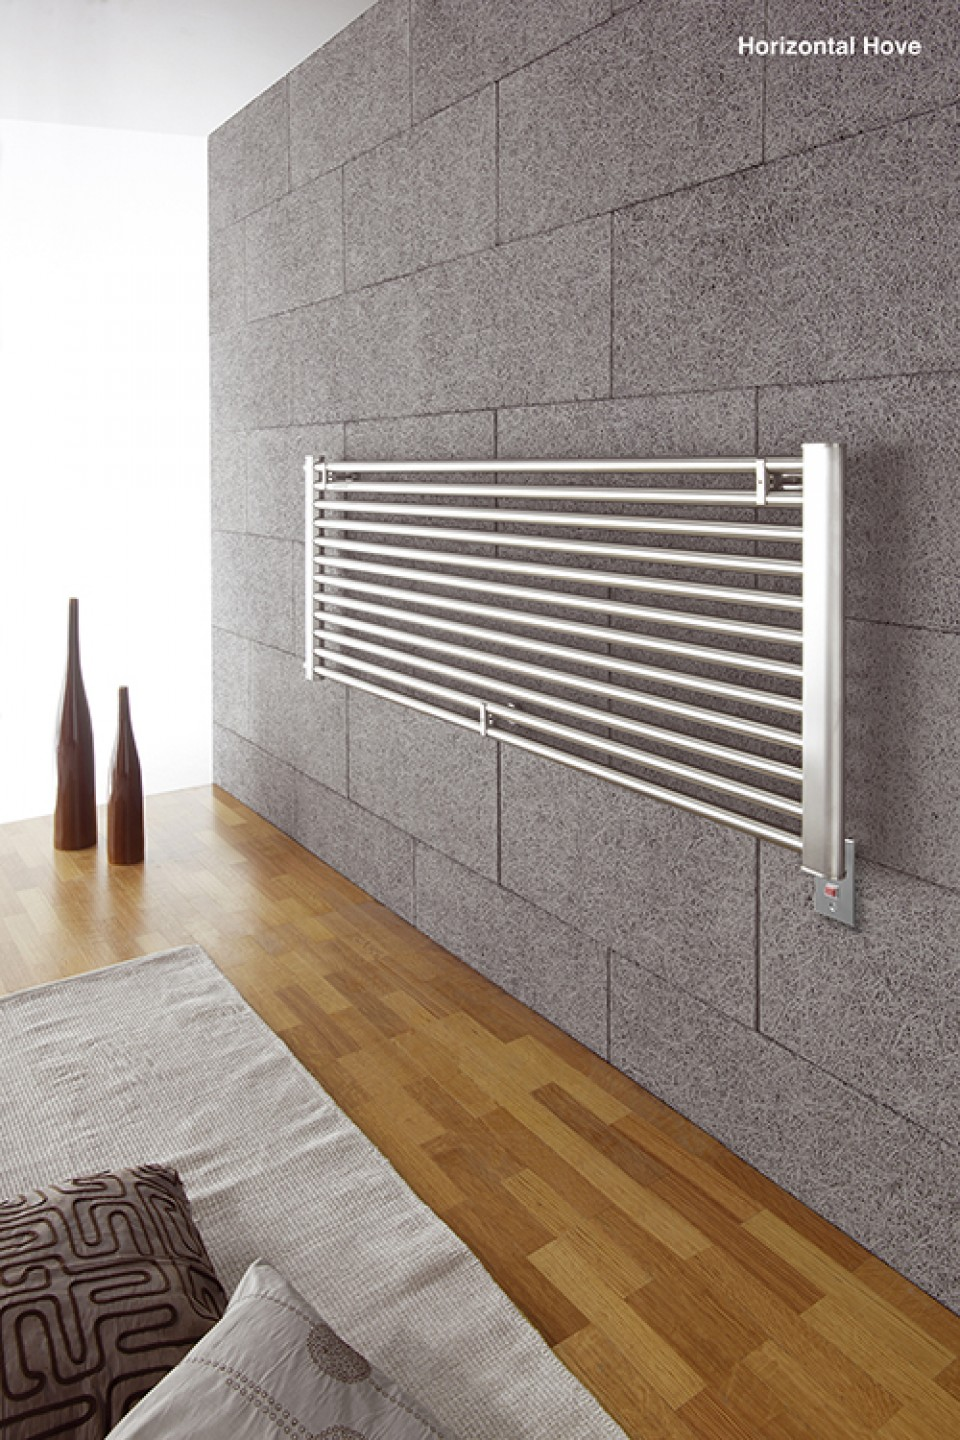 Awesome Amba Towel Warmers for Best Tower Warmer Inspiration: Electric Heated Towel Rack | Towel Rack Warmer | Amba Towel Warmers